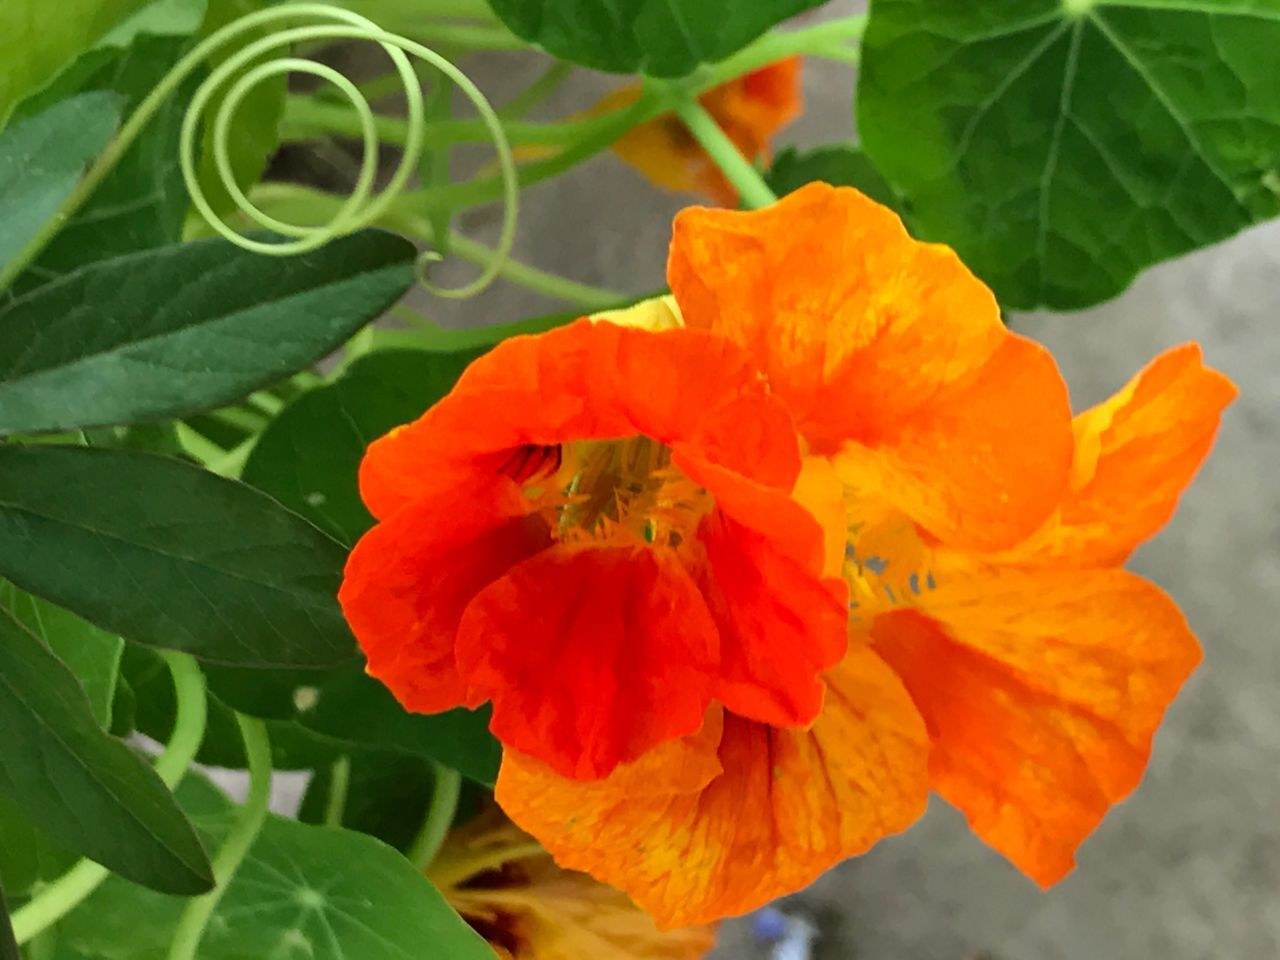 Flower Fragility Nature Growth Beauty In Nature Plant Leaf Petal Orange Color Blooming Freshness Flower Head Close-up No People Green Color Day Outdoors Swirl Swirly Tendril Nasturtium Orange Yellow Bright Colors